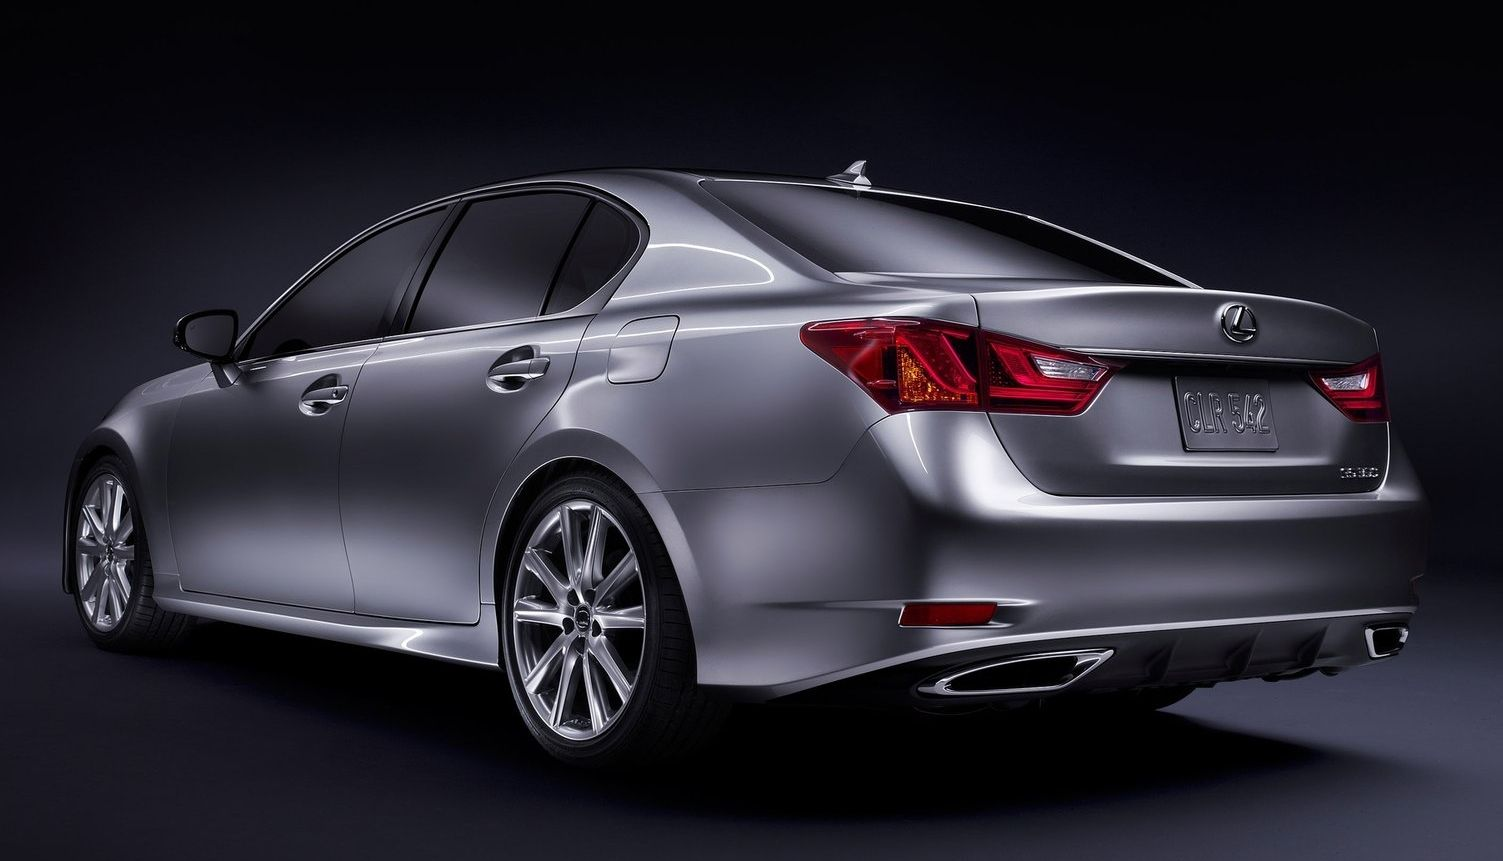 lexus gs 350 awd 2013 only cars and cars. Black Bedroom Furniture Sets. Home Design Ideas